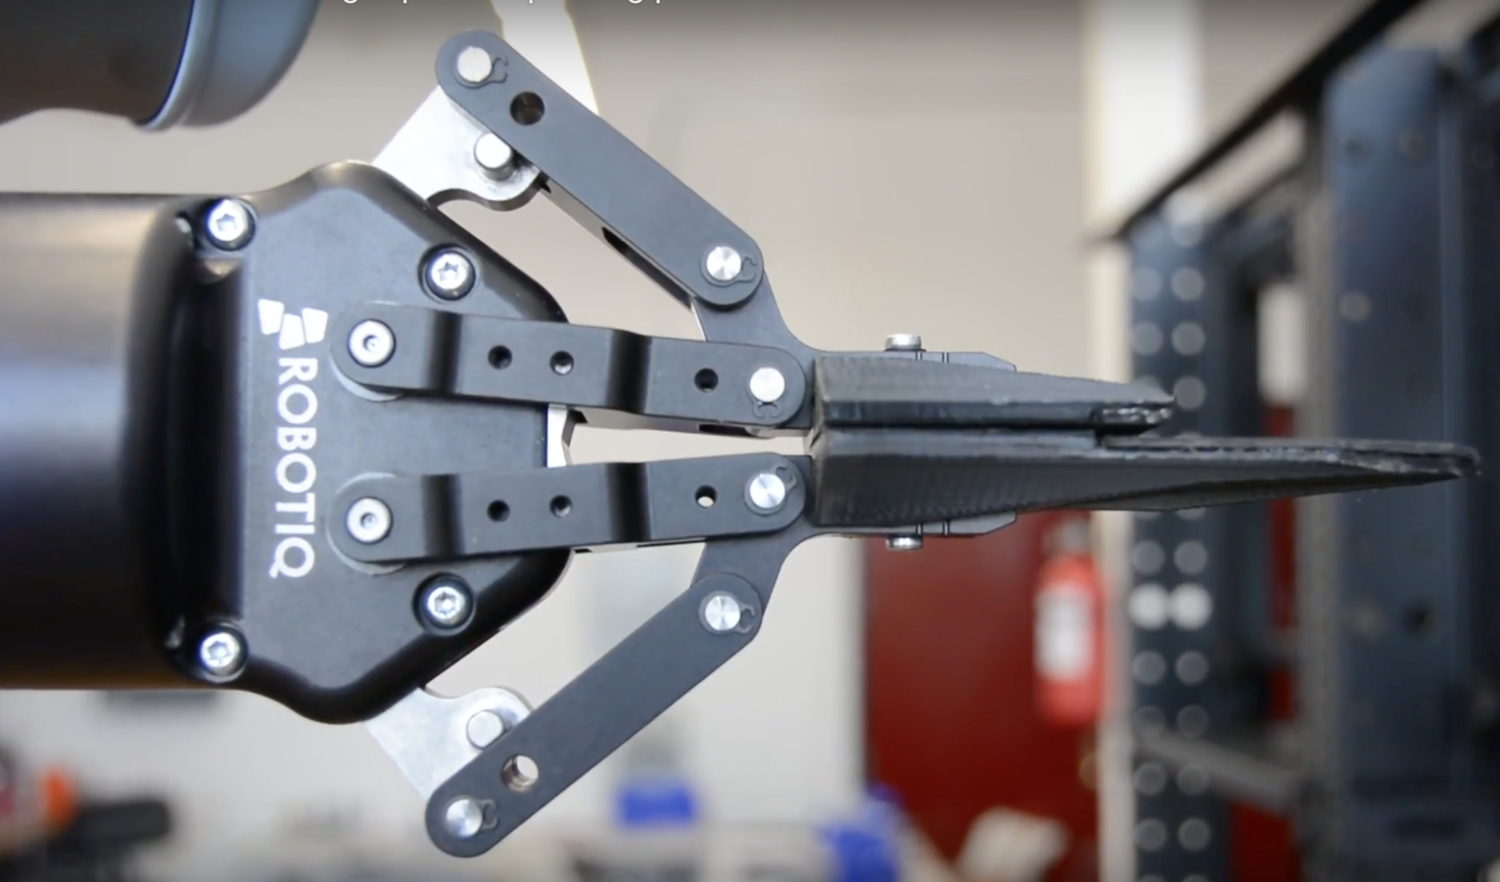 An image of a robot arm used for manufacturing